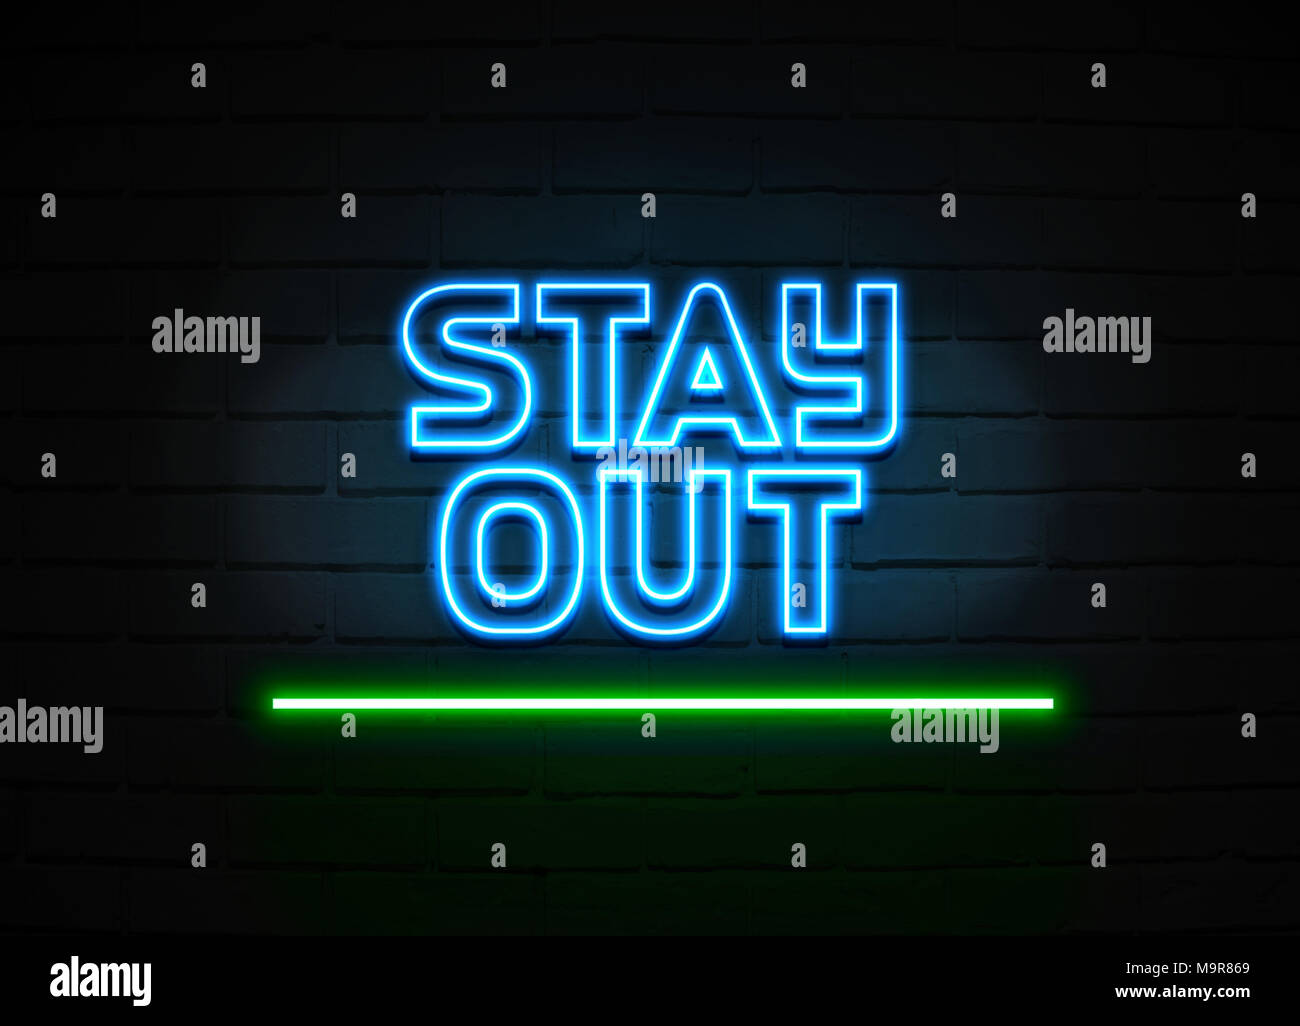 Stay Out neon sign - Glowing Neon Sign on brickwall wall - 3D rendered royalty free stock illustration. - Stock Image